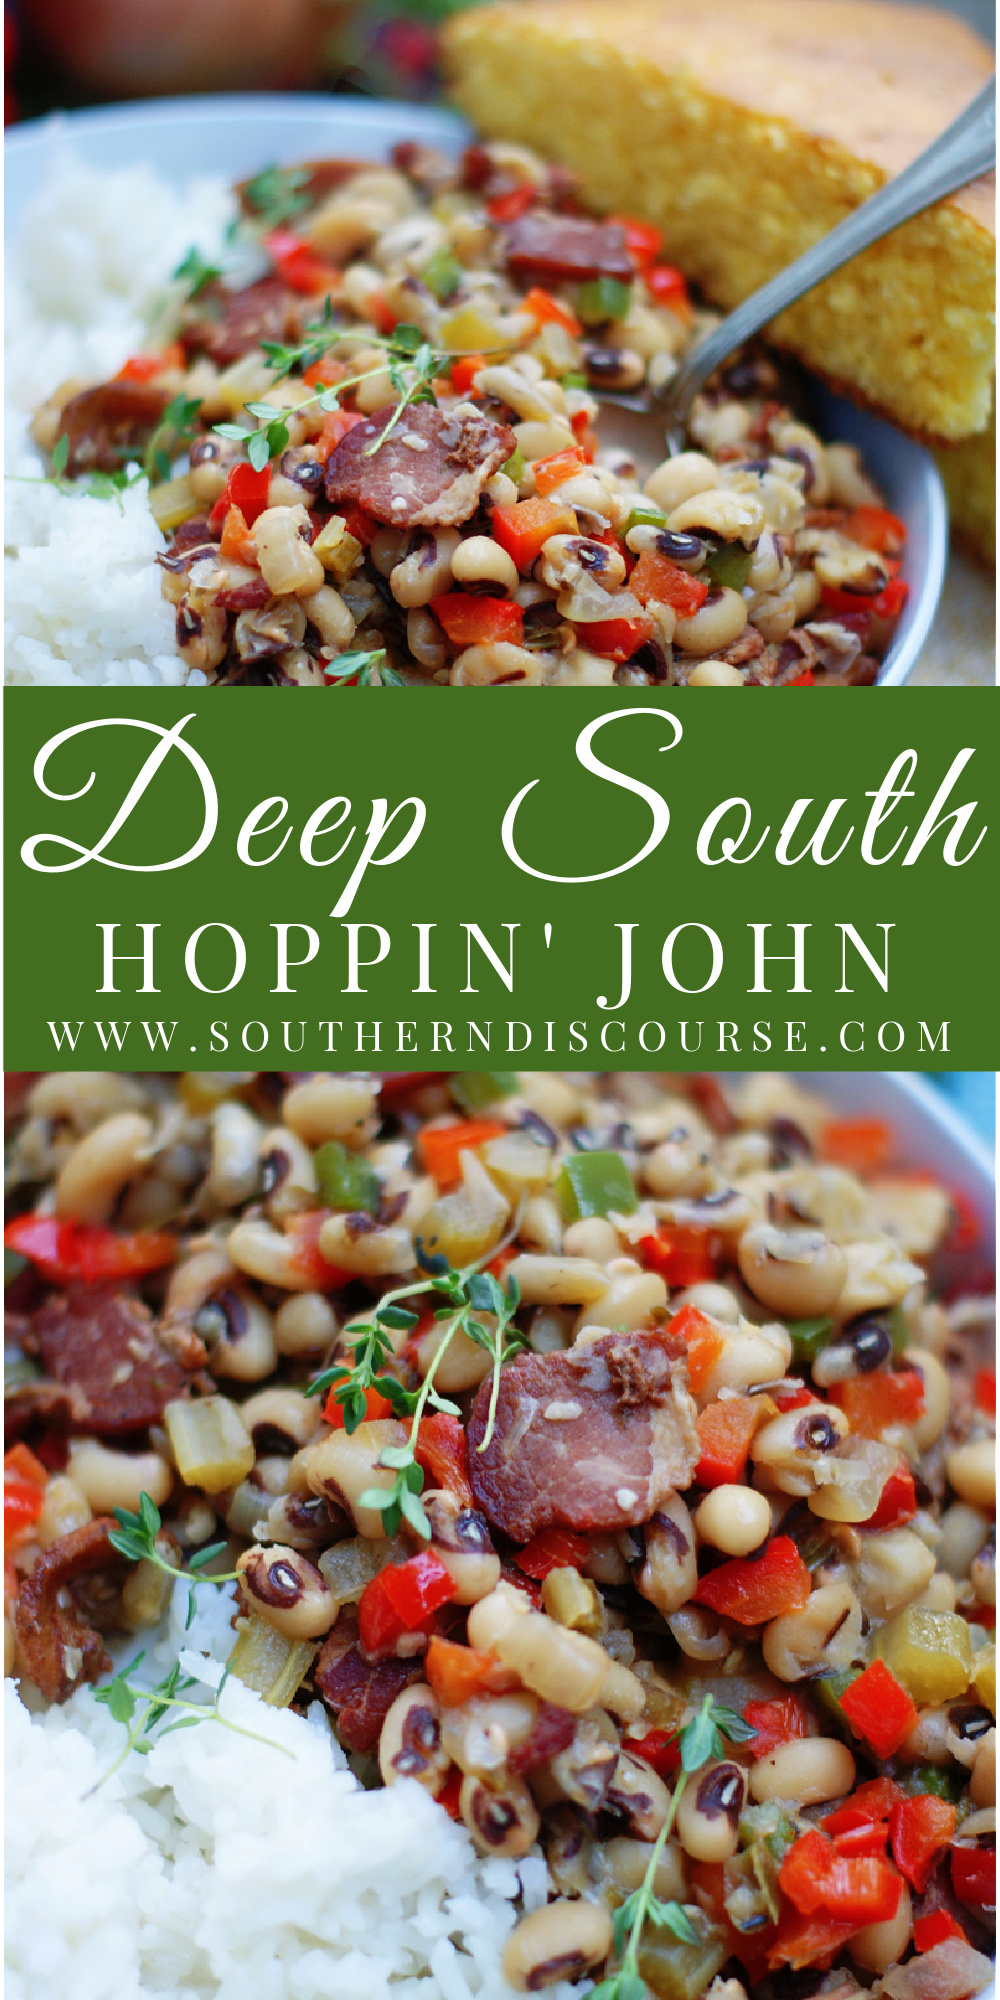 As Southern as it is delicious, this traditional black eyed pea recipe enjoys the rich flavors of pork, bell peppers, onion, celery, herbs and spices served over rice.  Hoppin' John is comforting, stick-to-your ribs, real kind of food.  And even though it's a favorite New Year's Day dish, just one bite will have you wanting to dig in all year long!